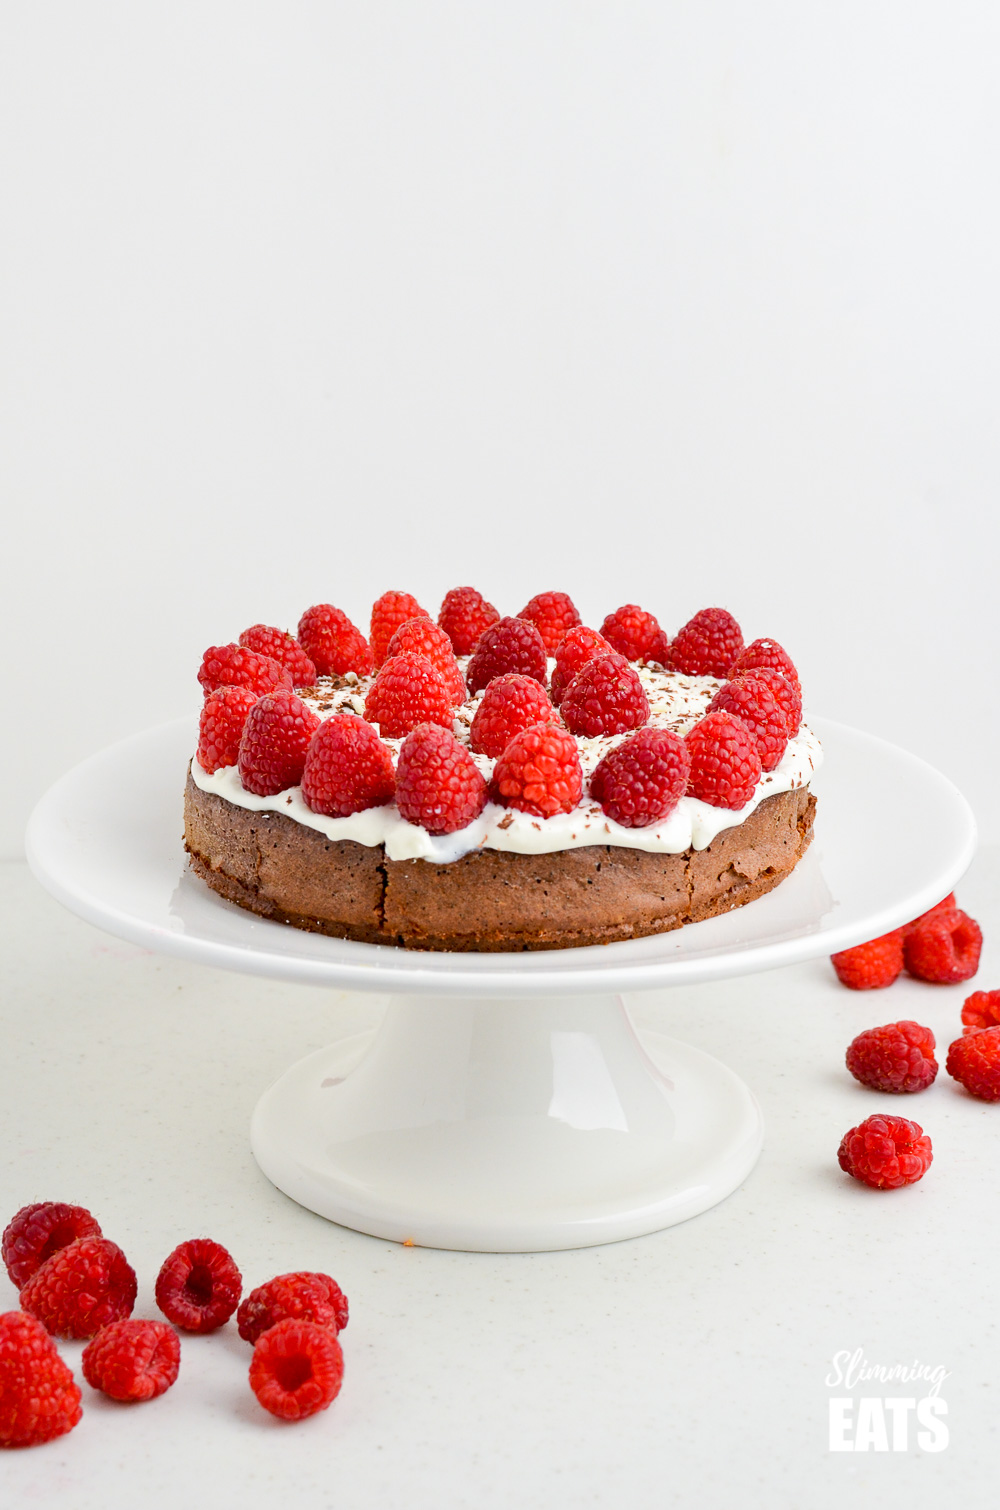 Raspberry Topped Chocolate Scan Bran Cake on a white cake stand with scattered raspberries